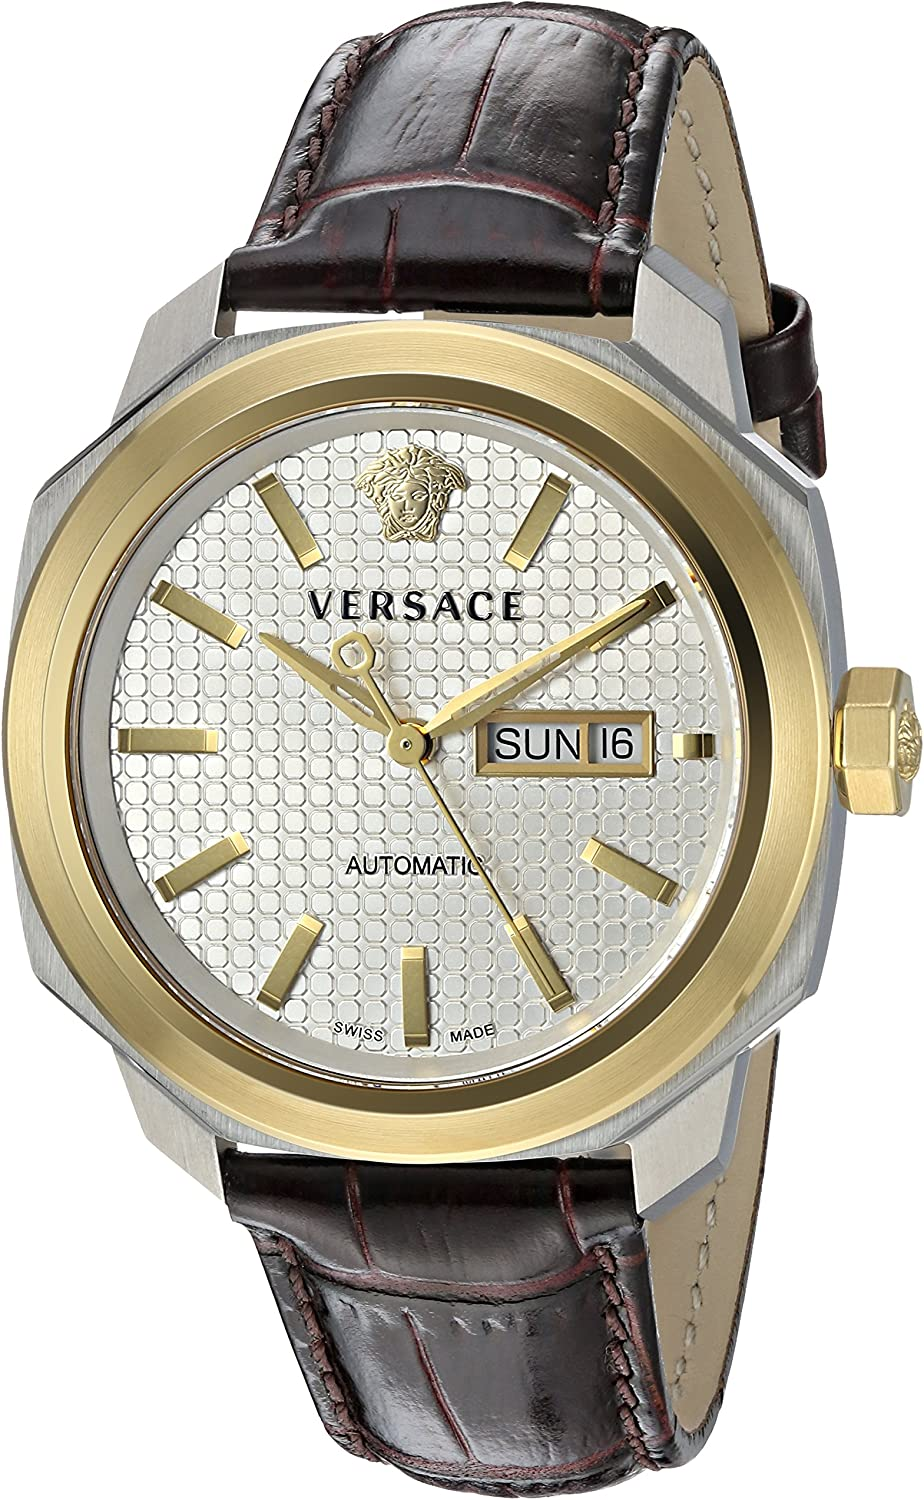 Versace Men s VQI020015 DYLOS AUTOMATIC DAY Analog Display Swiss Automatic Brown Watch